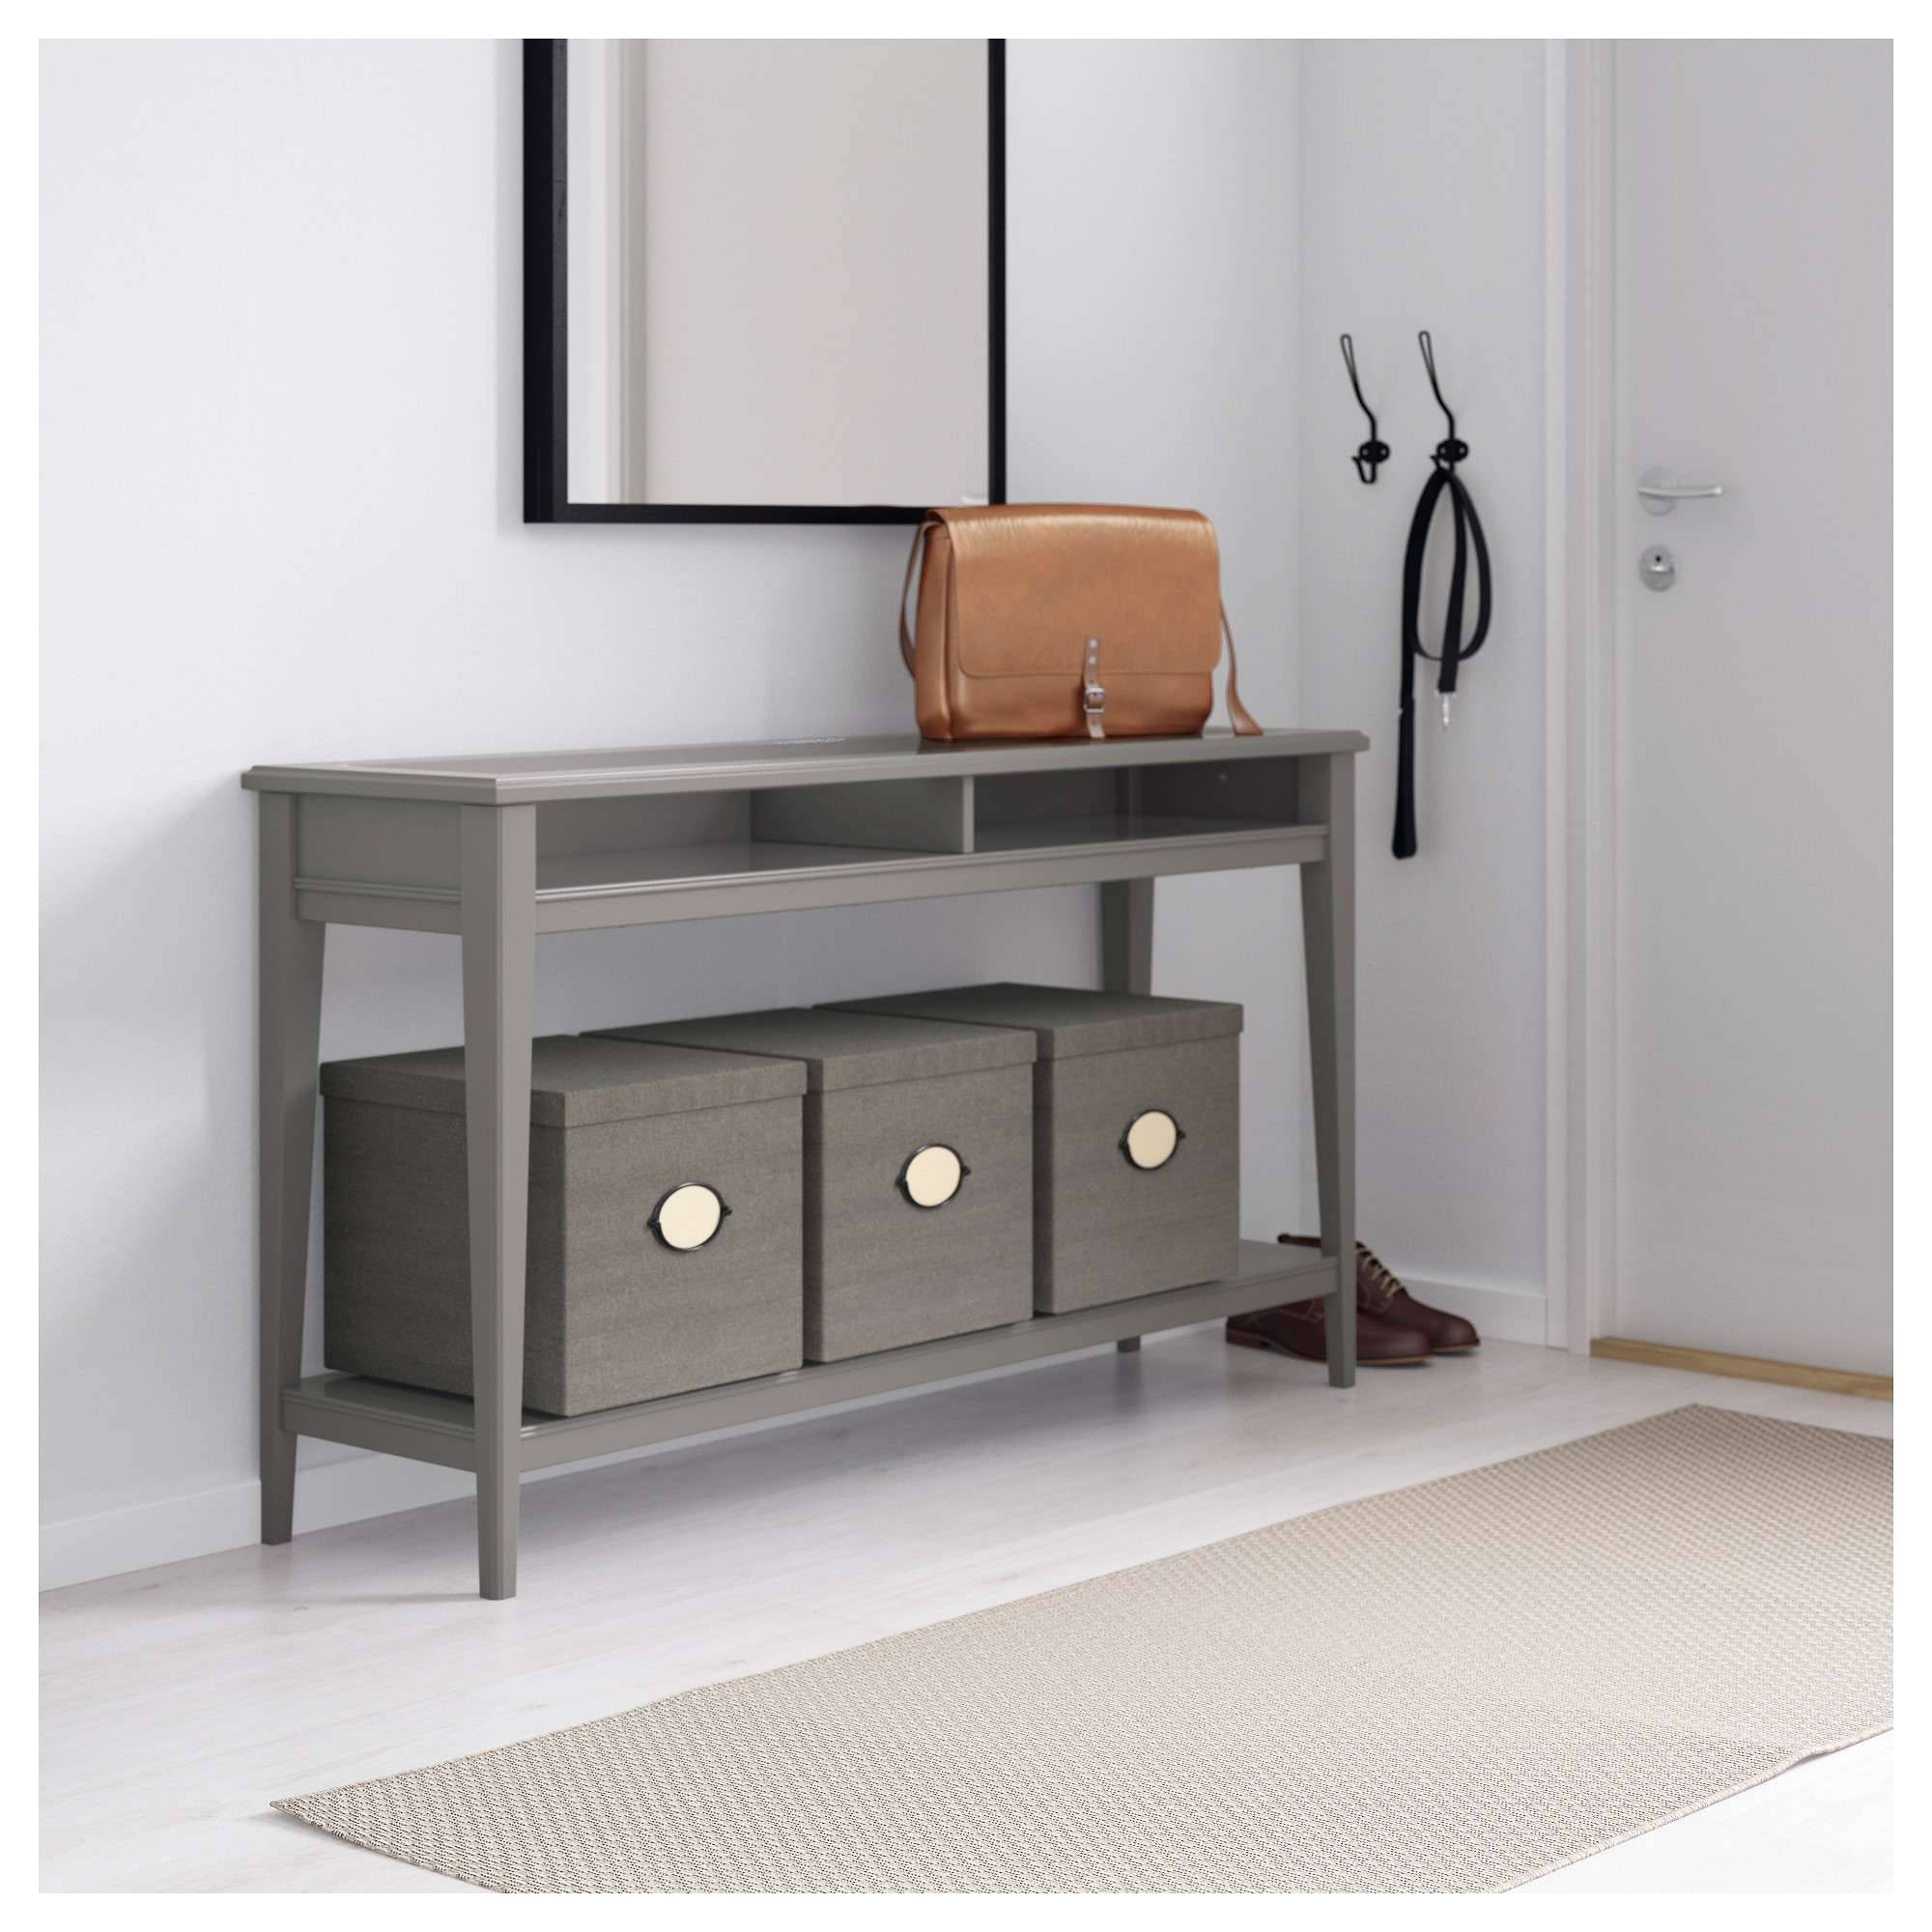 liatorp sofa table instructions 80 leather 2019 popular sideboards